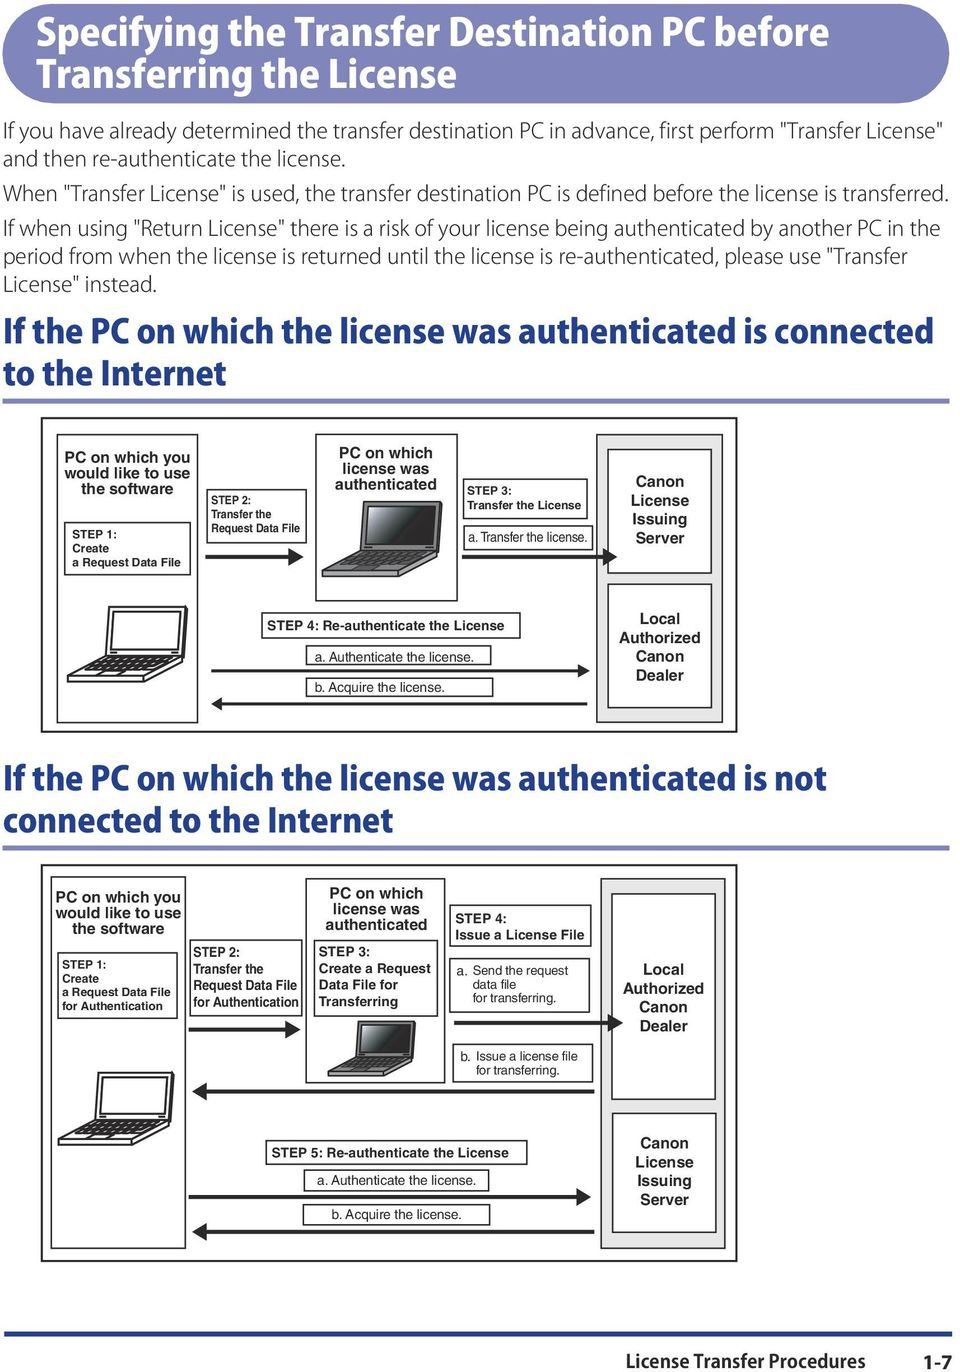 "If when using ""Return License"" there is a risk of your license being authenticated by another PC in the period from when the license is returned until the license is re-authenticated, please use"